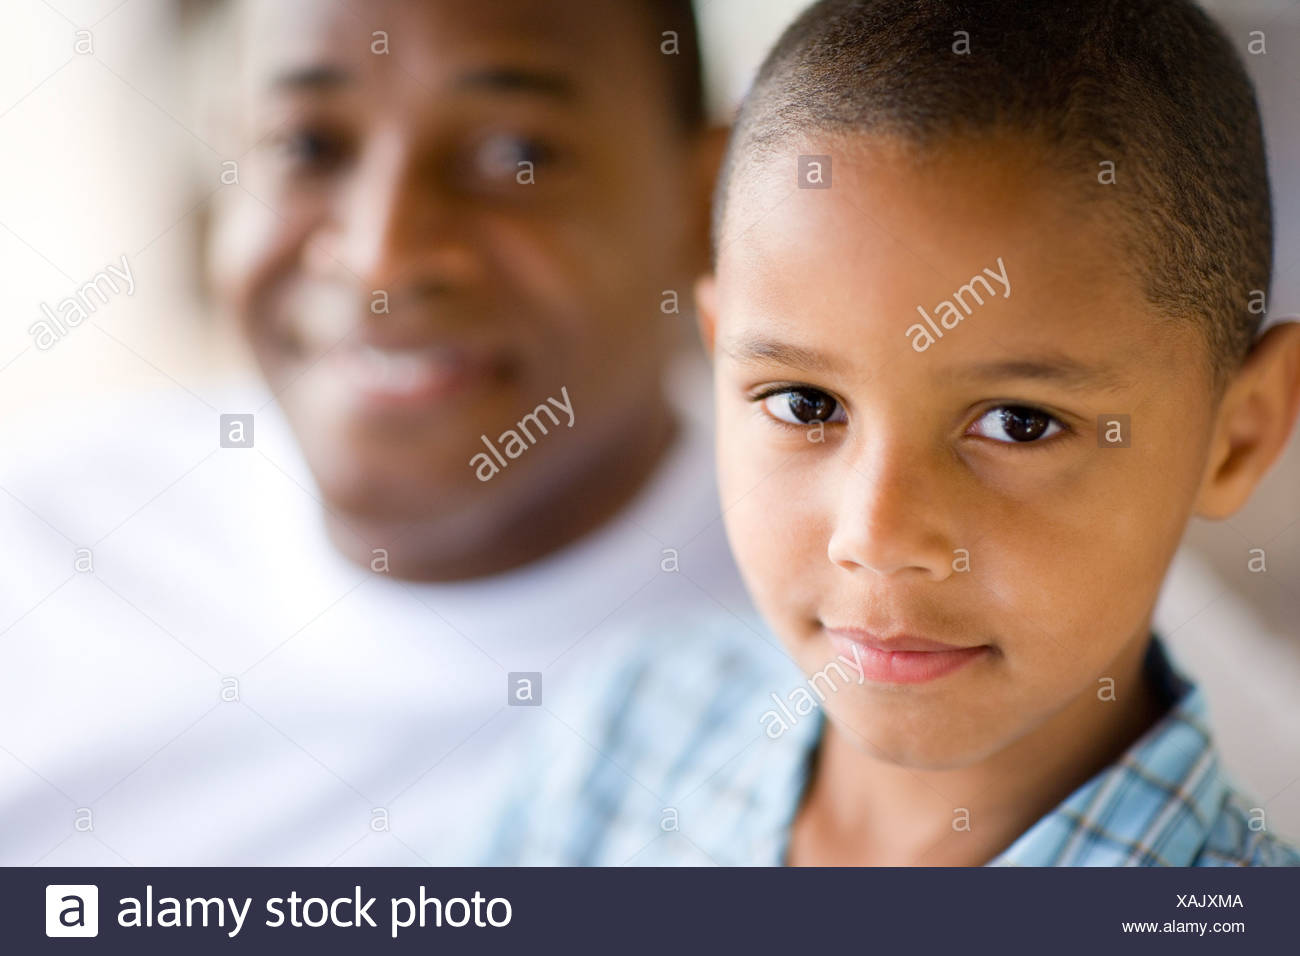 Father and son. - Stock Image